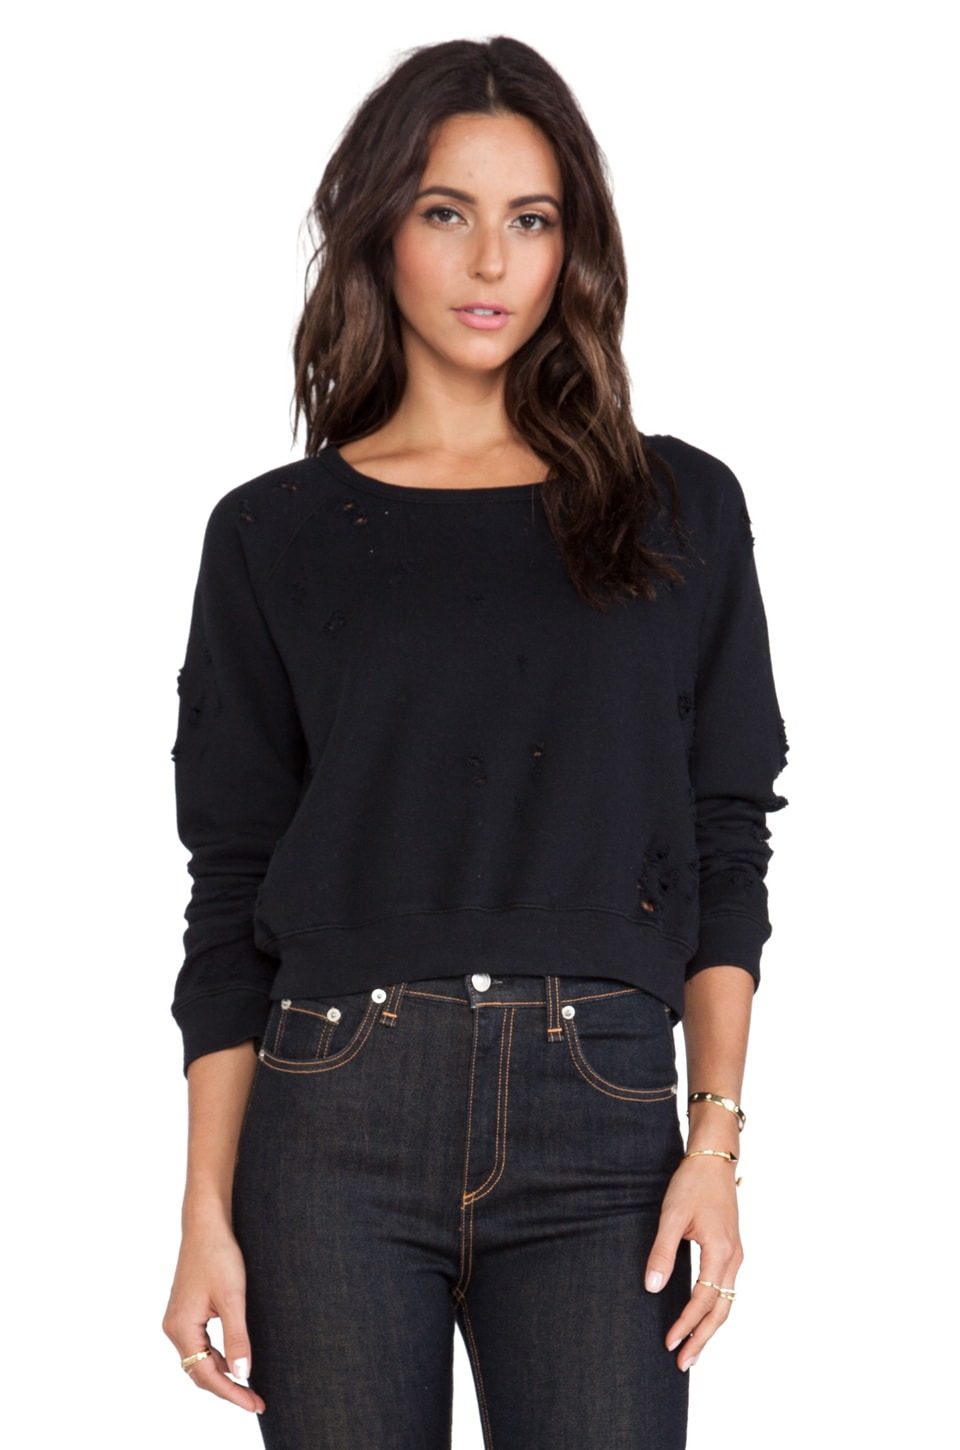 TEXTILE Elizabeth and James Distressed Perfect Sweatshirt in Black